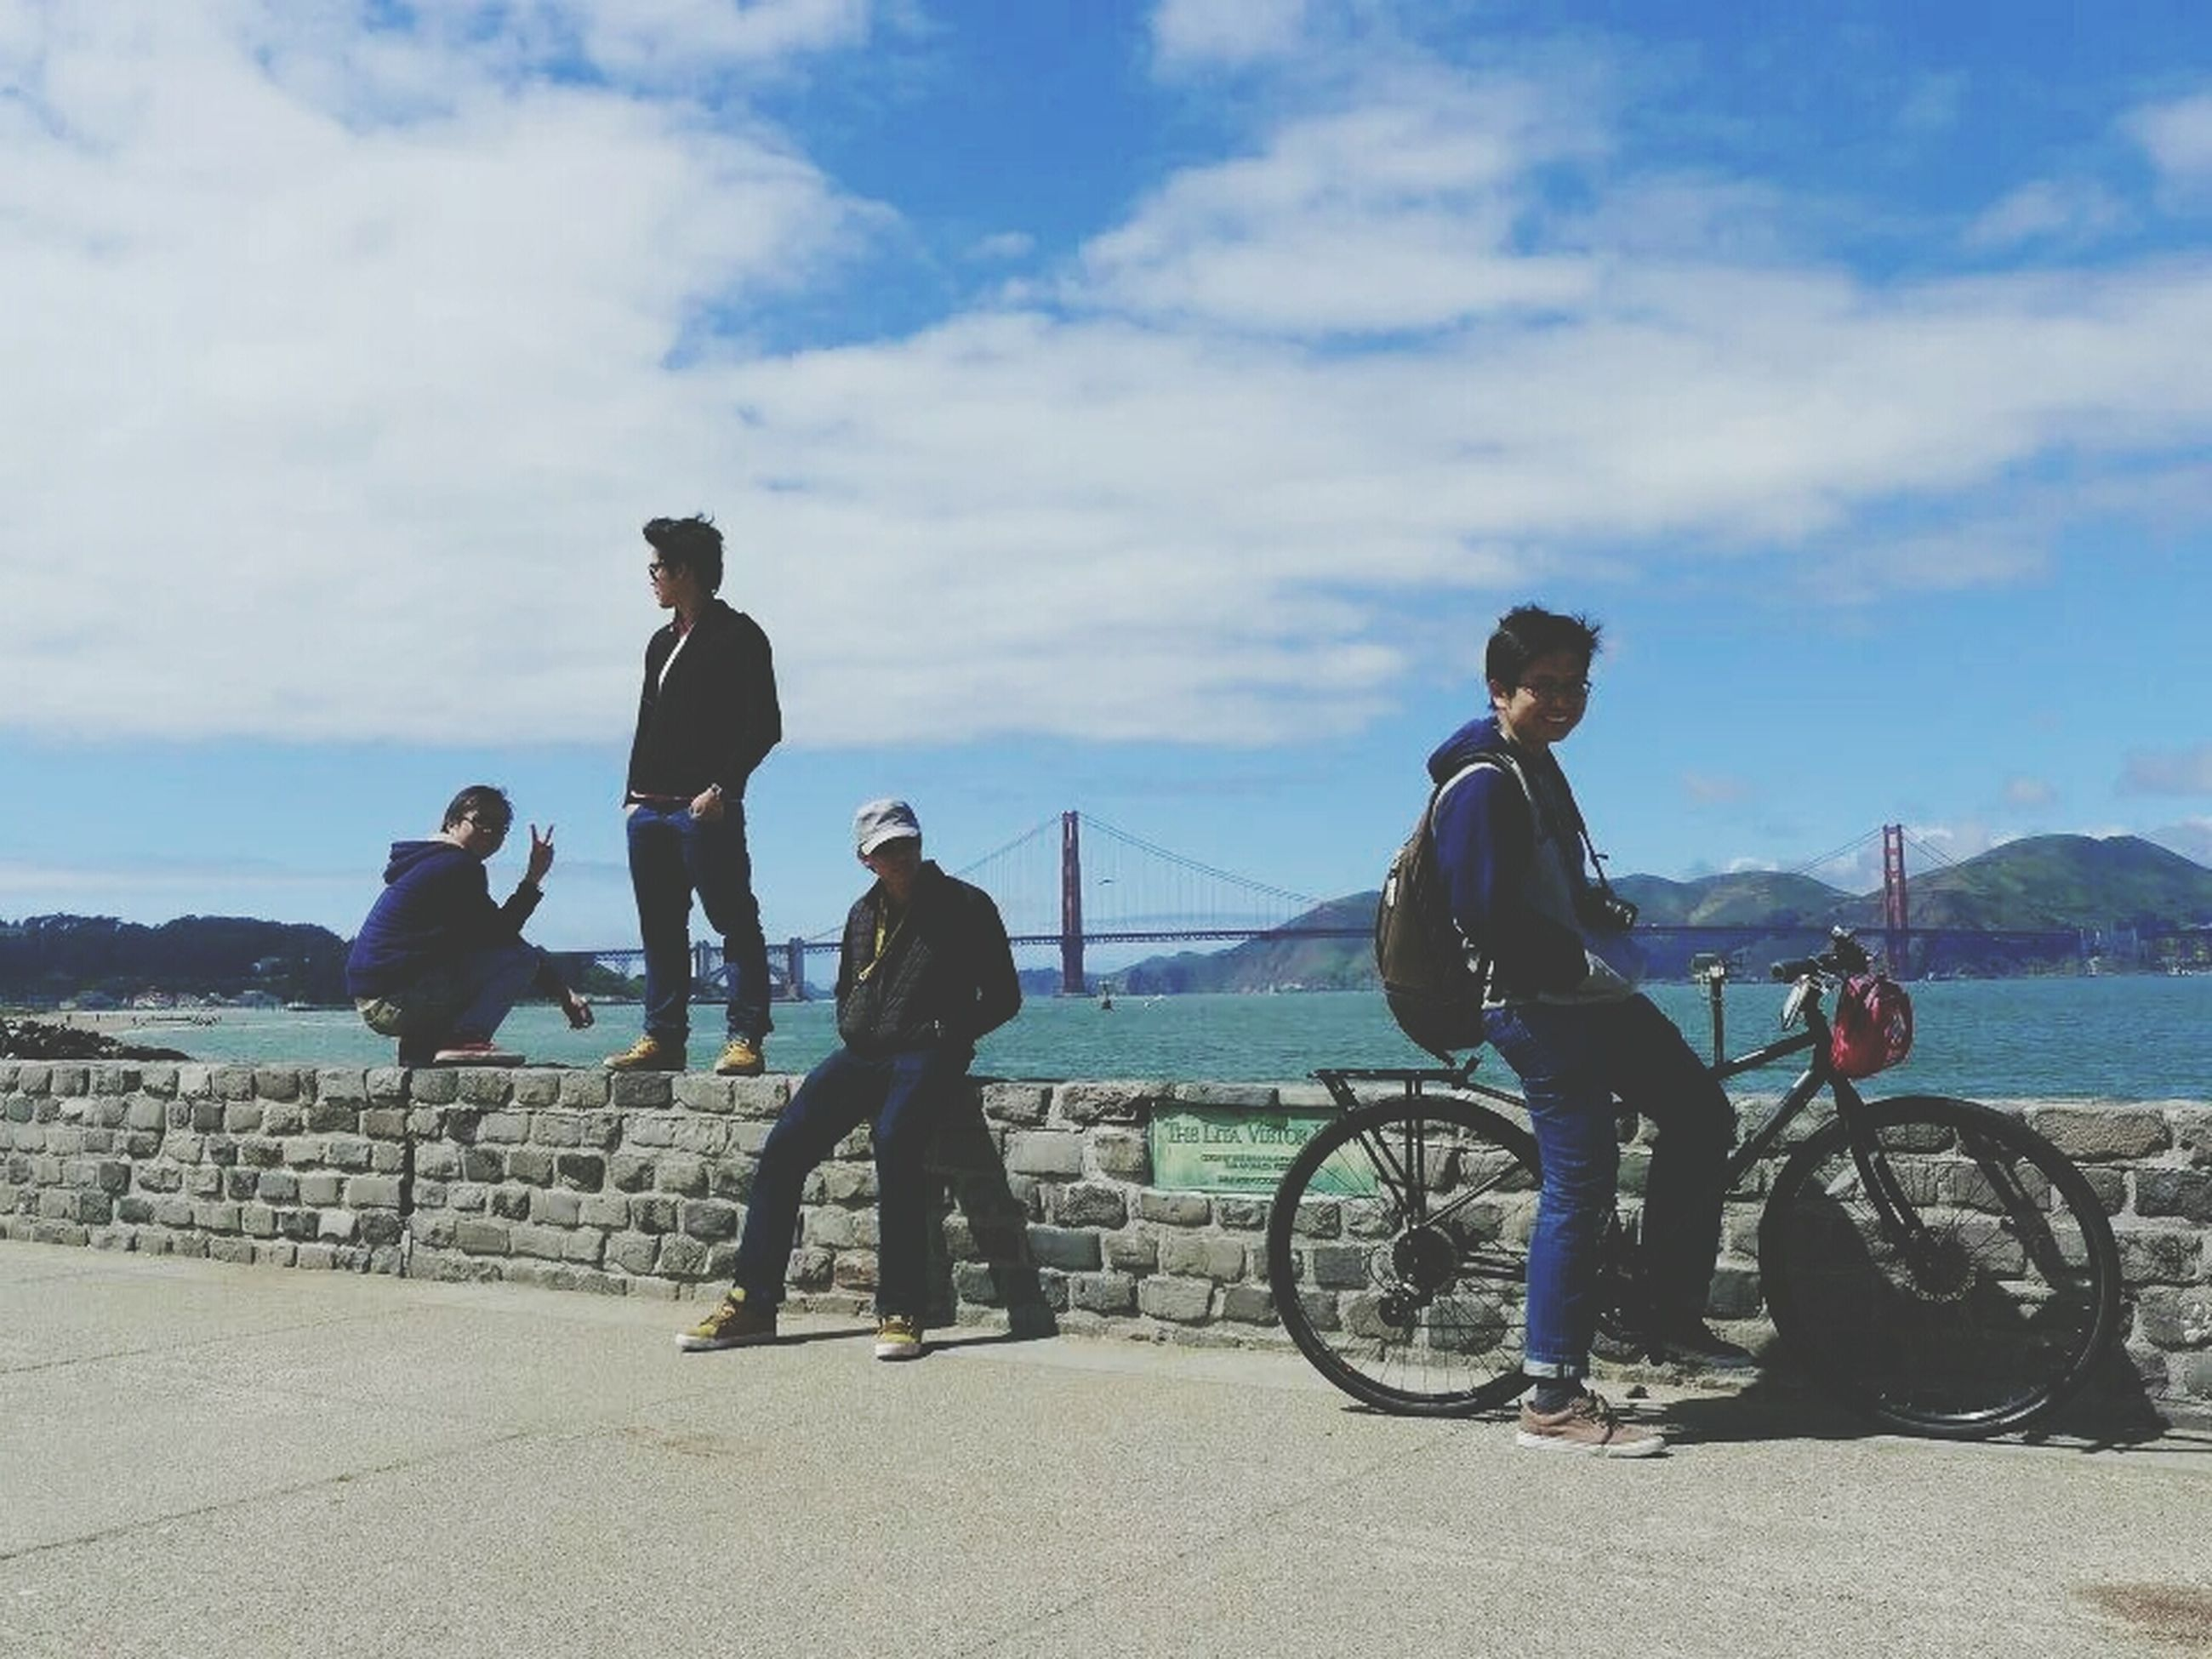 lifestyles, men, leisure activity, sky, water, full length, transportation, sea, casual clothing, togetherness, cloud - sky, mode of transport, day, nautical vessel, boys, person, standing, rear view